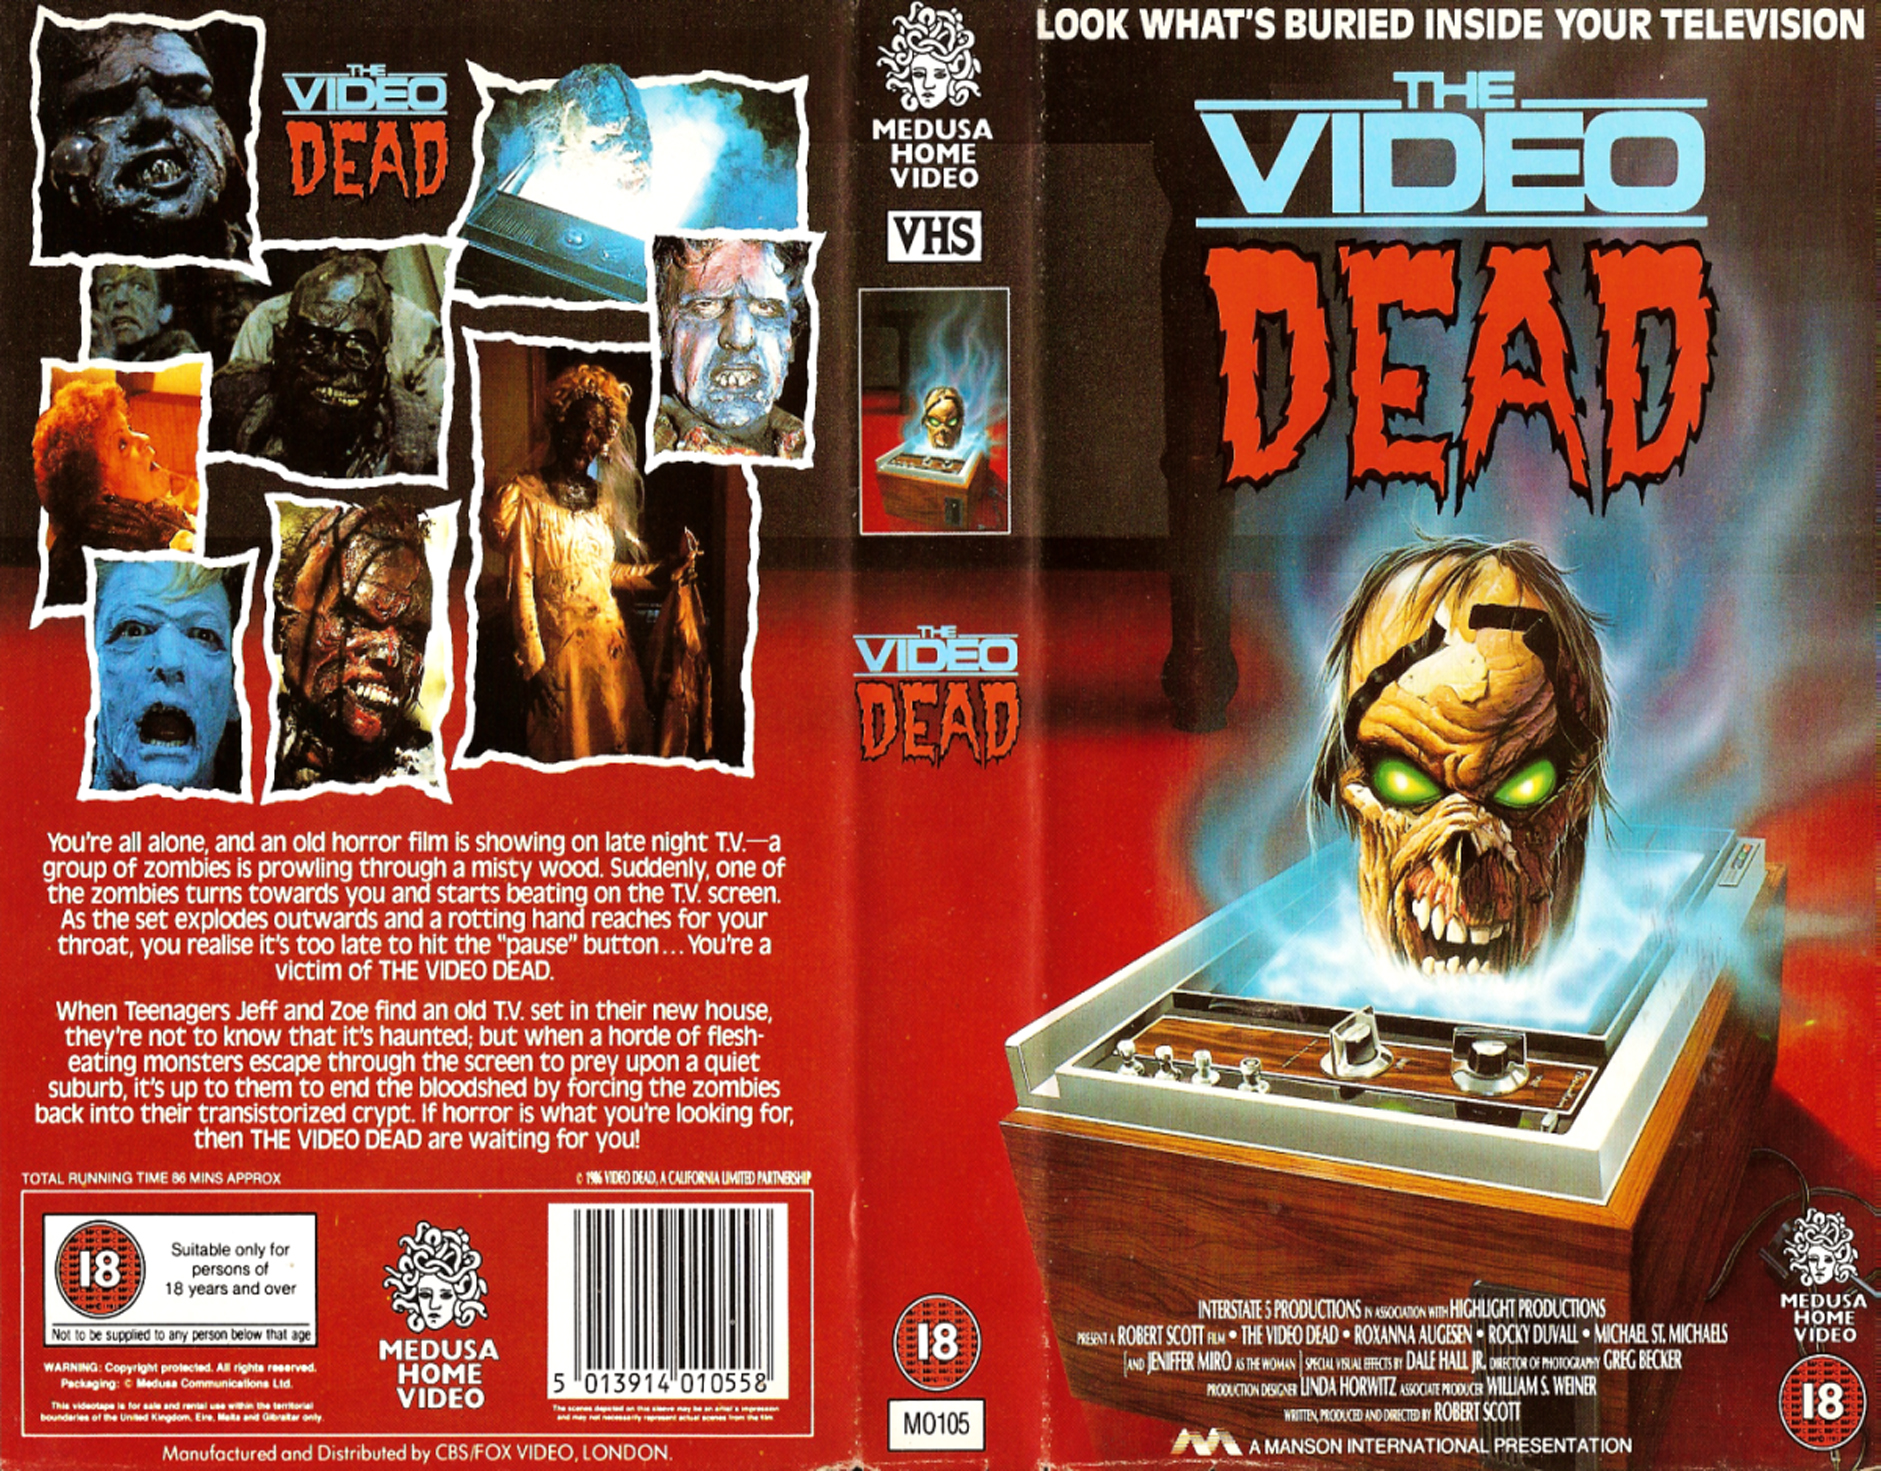 THE-VIDEO-DEAD